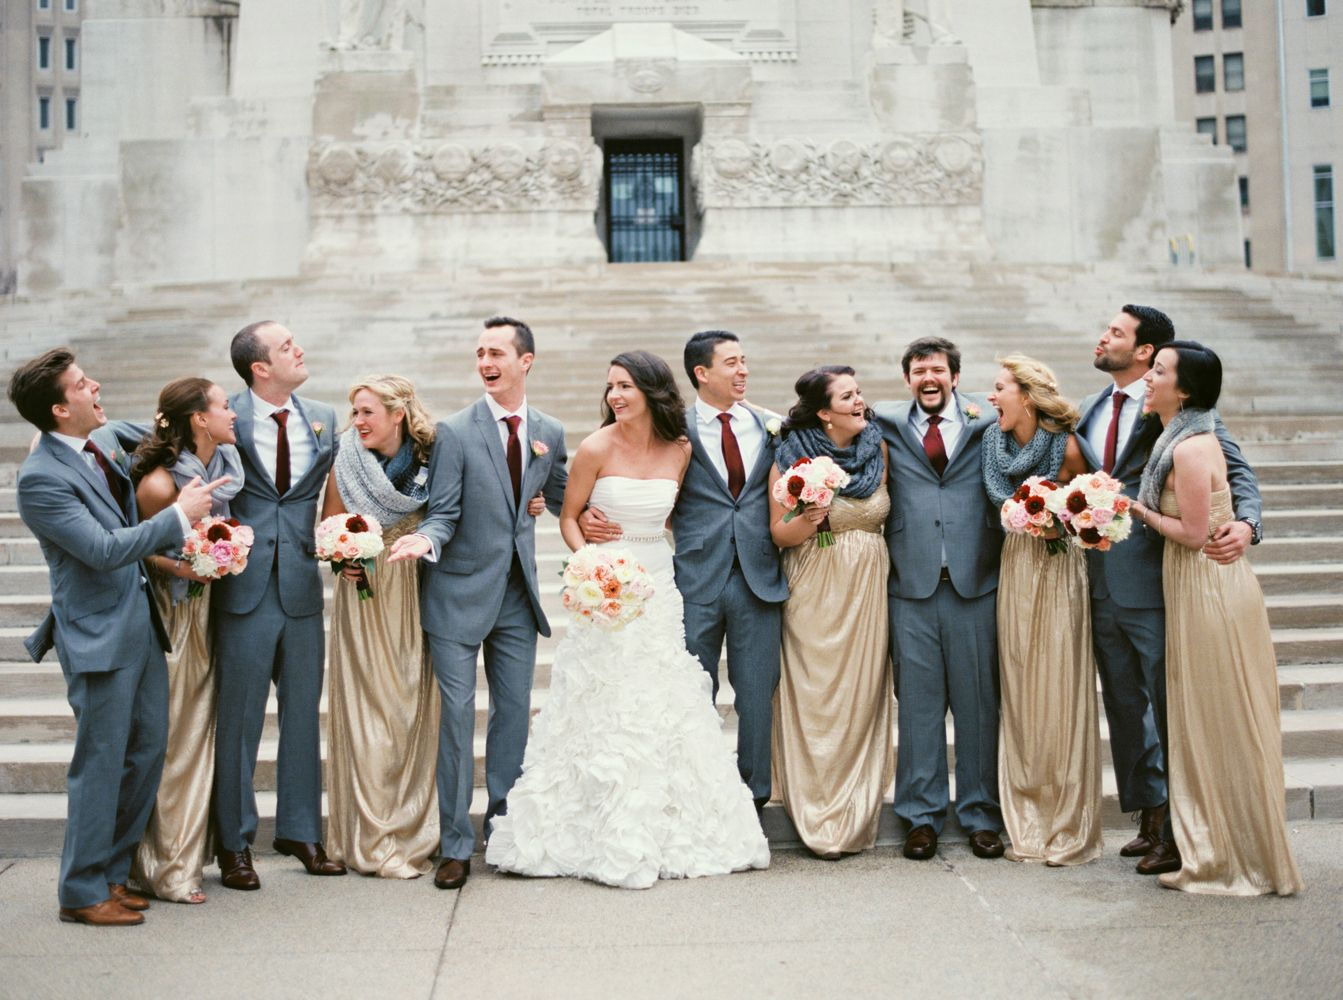 Gold and Gray Wedding Party | Party photography, Grey weddings and ...